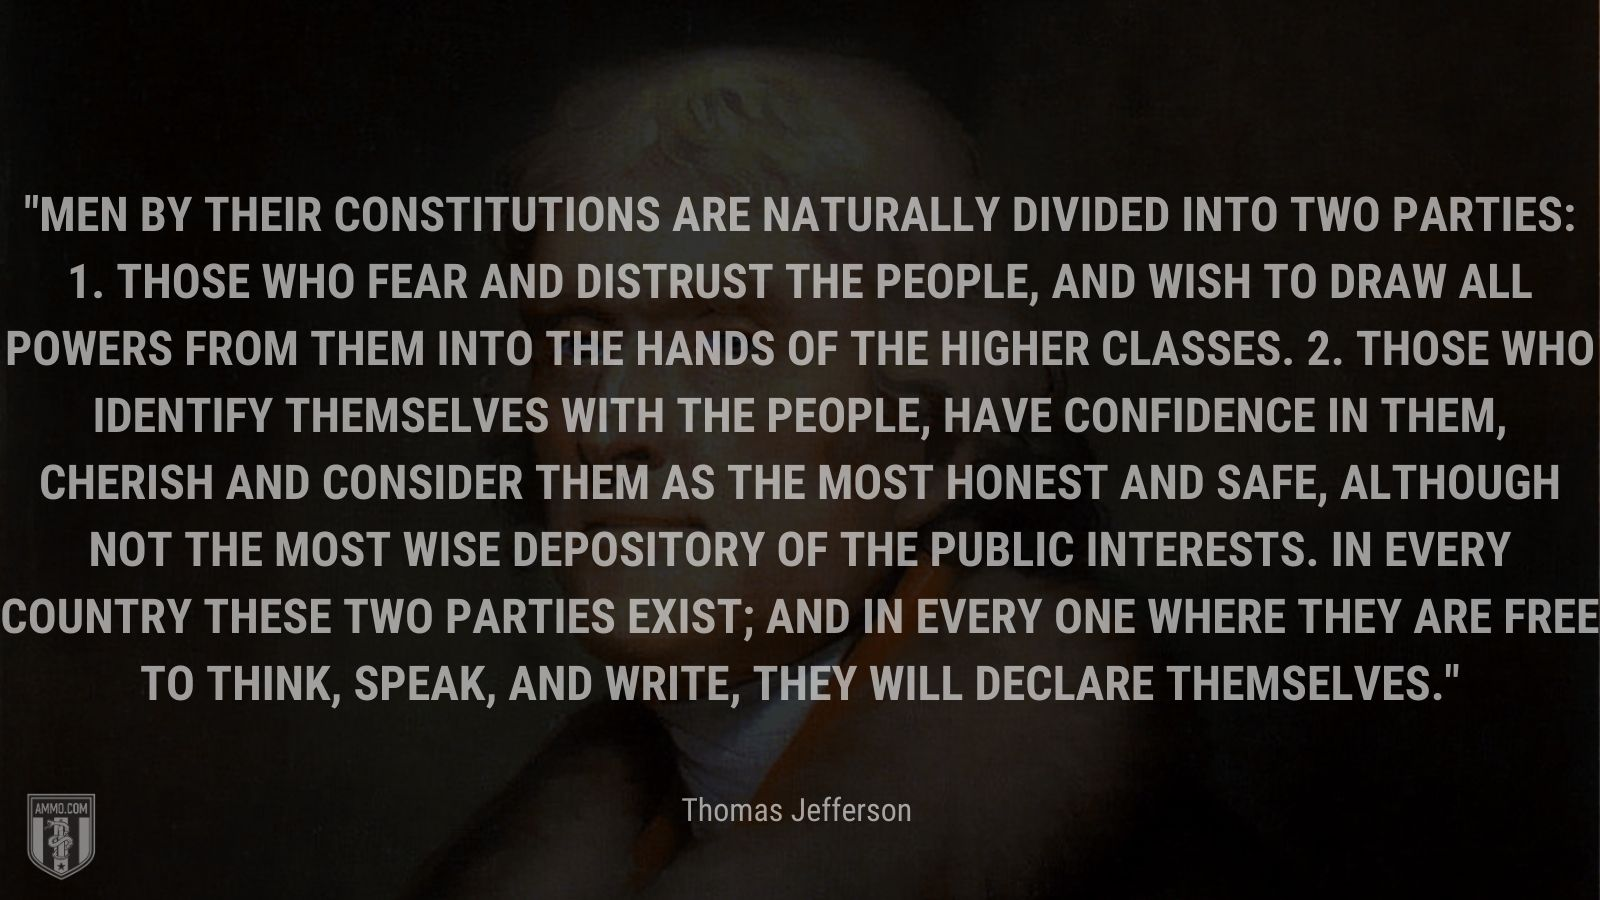 """""""Men by their constitutions are naturally divided into two parties: 1. Those who fear and distrust the people, and wish to draw all powers from them into the hands of the higher classes. 2. Those who identify themselves with the people, have confidence in them, cherish and consider them as the most honest and safe, although not the most wise depository of the public interests. In every country these two parties exist; and in every one where they are free to think, speak, and write, they will declare themselves."""" - Thomas Jefferson"""